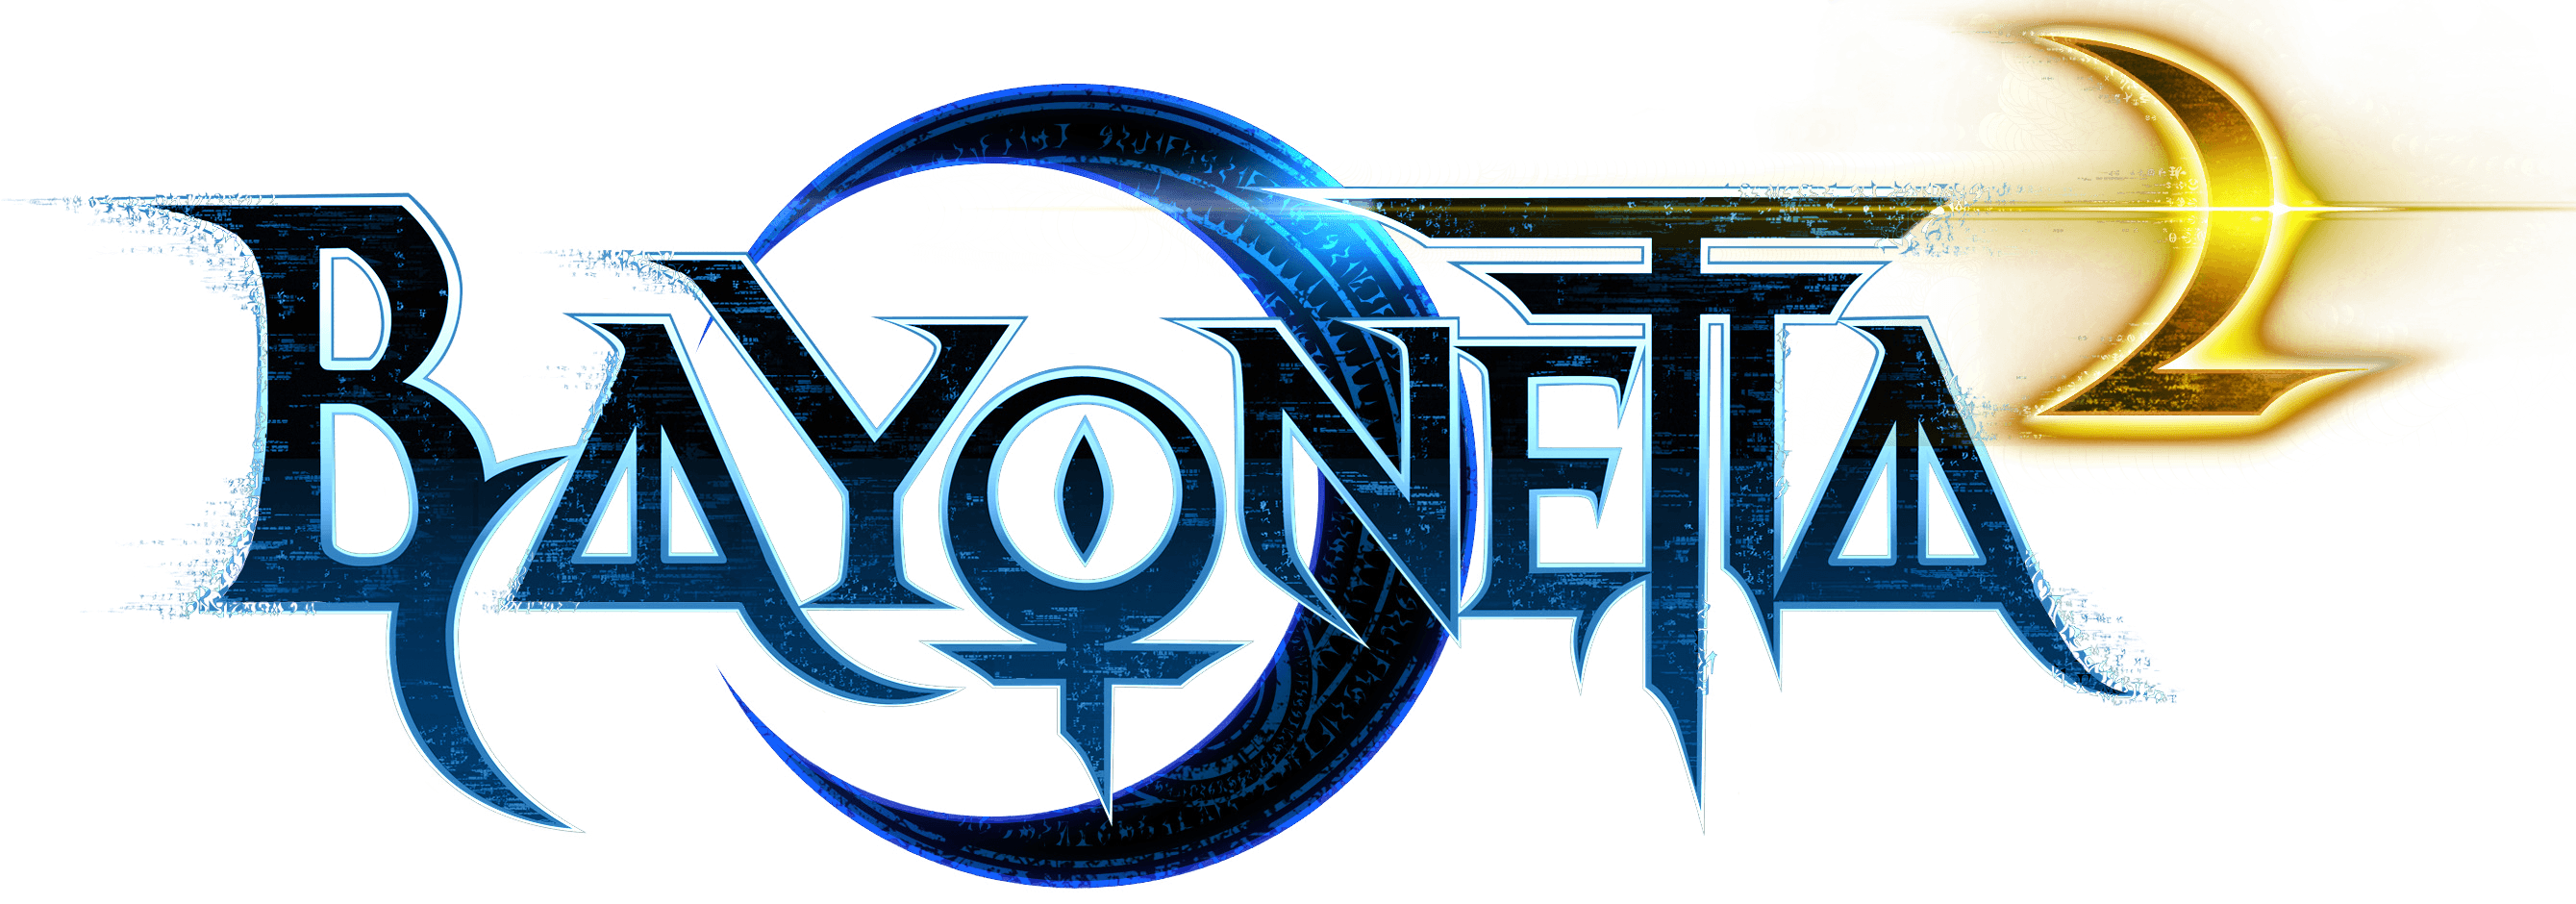 Two Logo Bayonetta 2 - D...